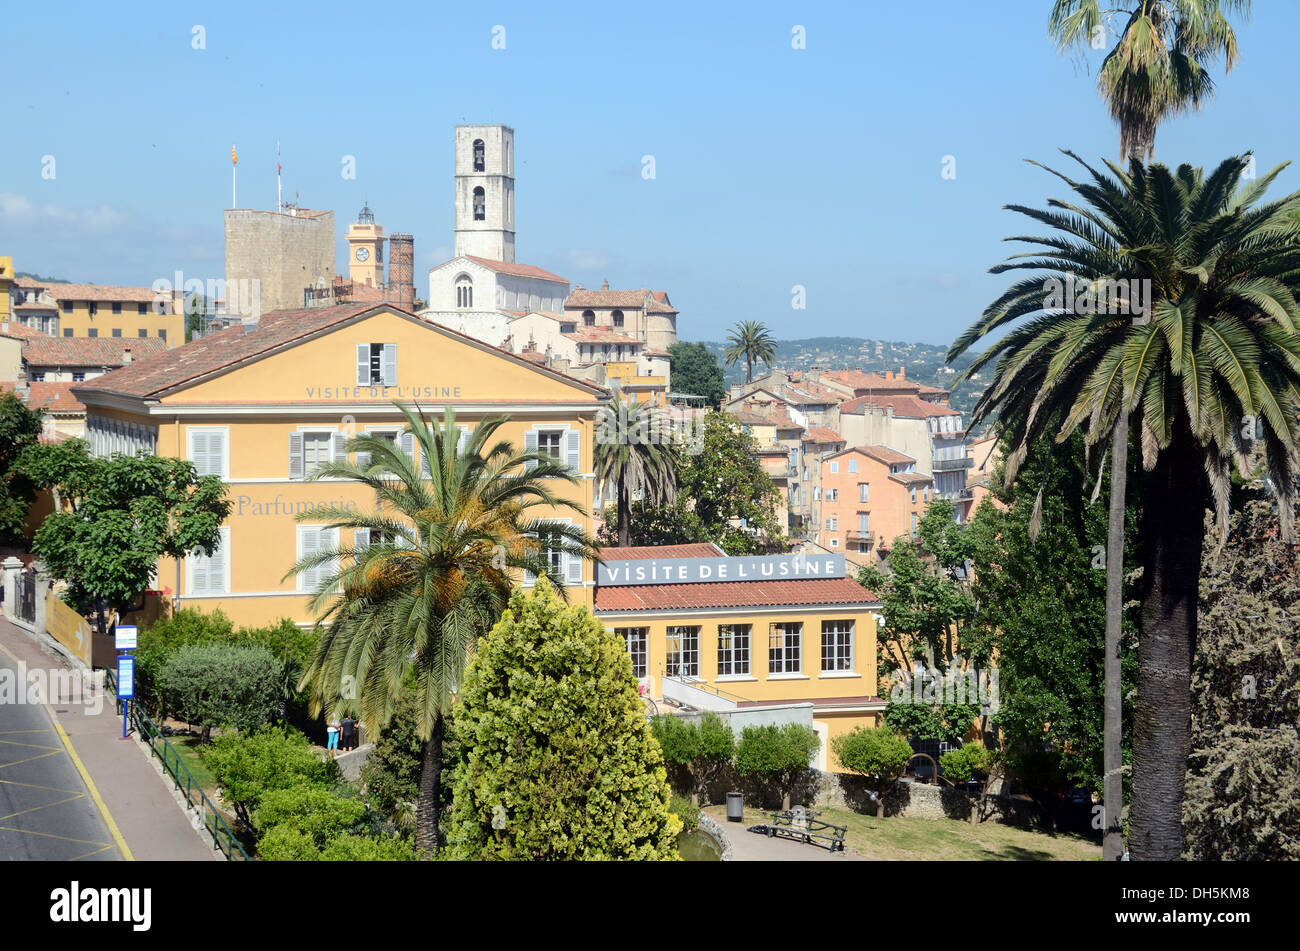 Fragonard Perfumery Museum & Perfume Factory View over Old Town & Gardens Grasse Alpes-Maritimes France - Stock Image